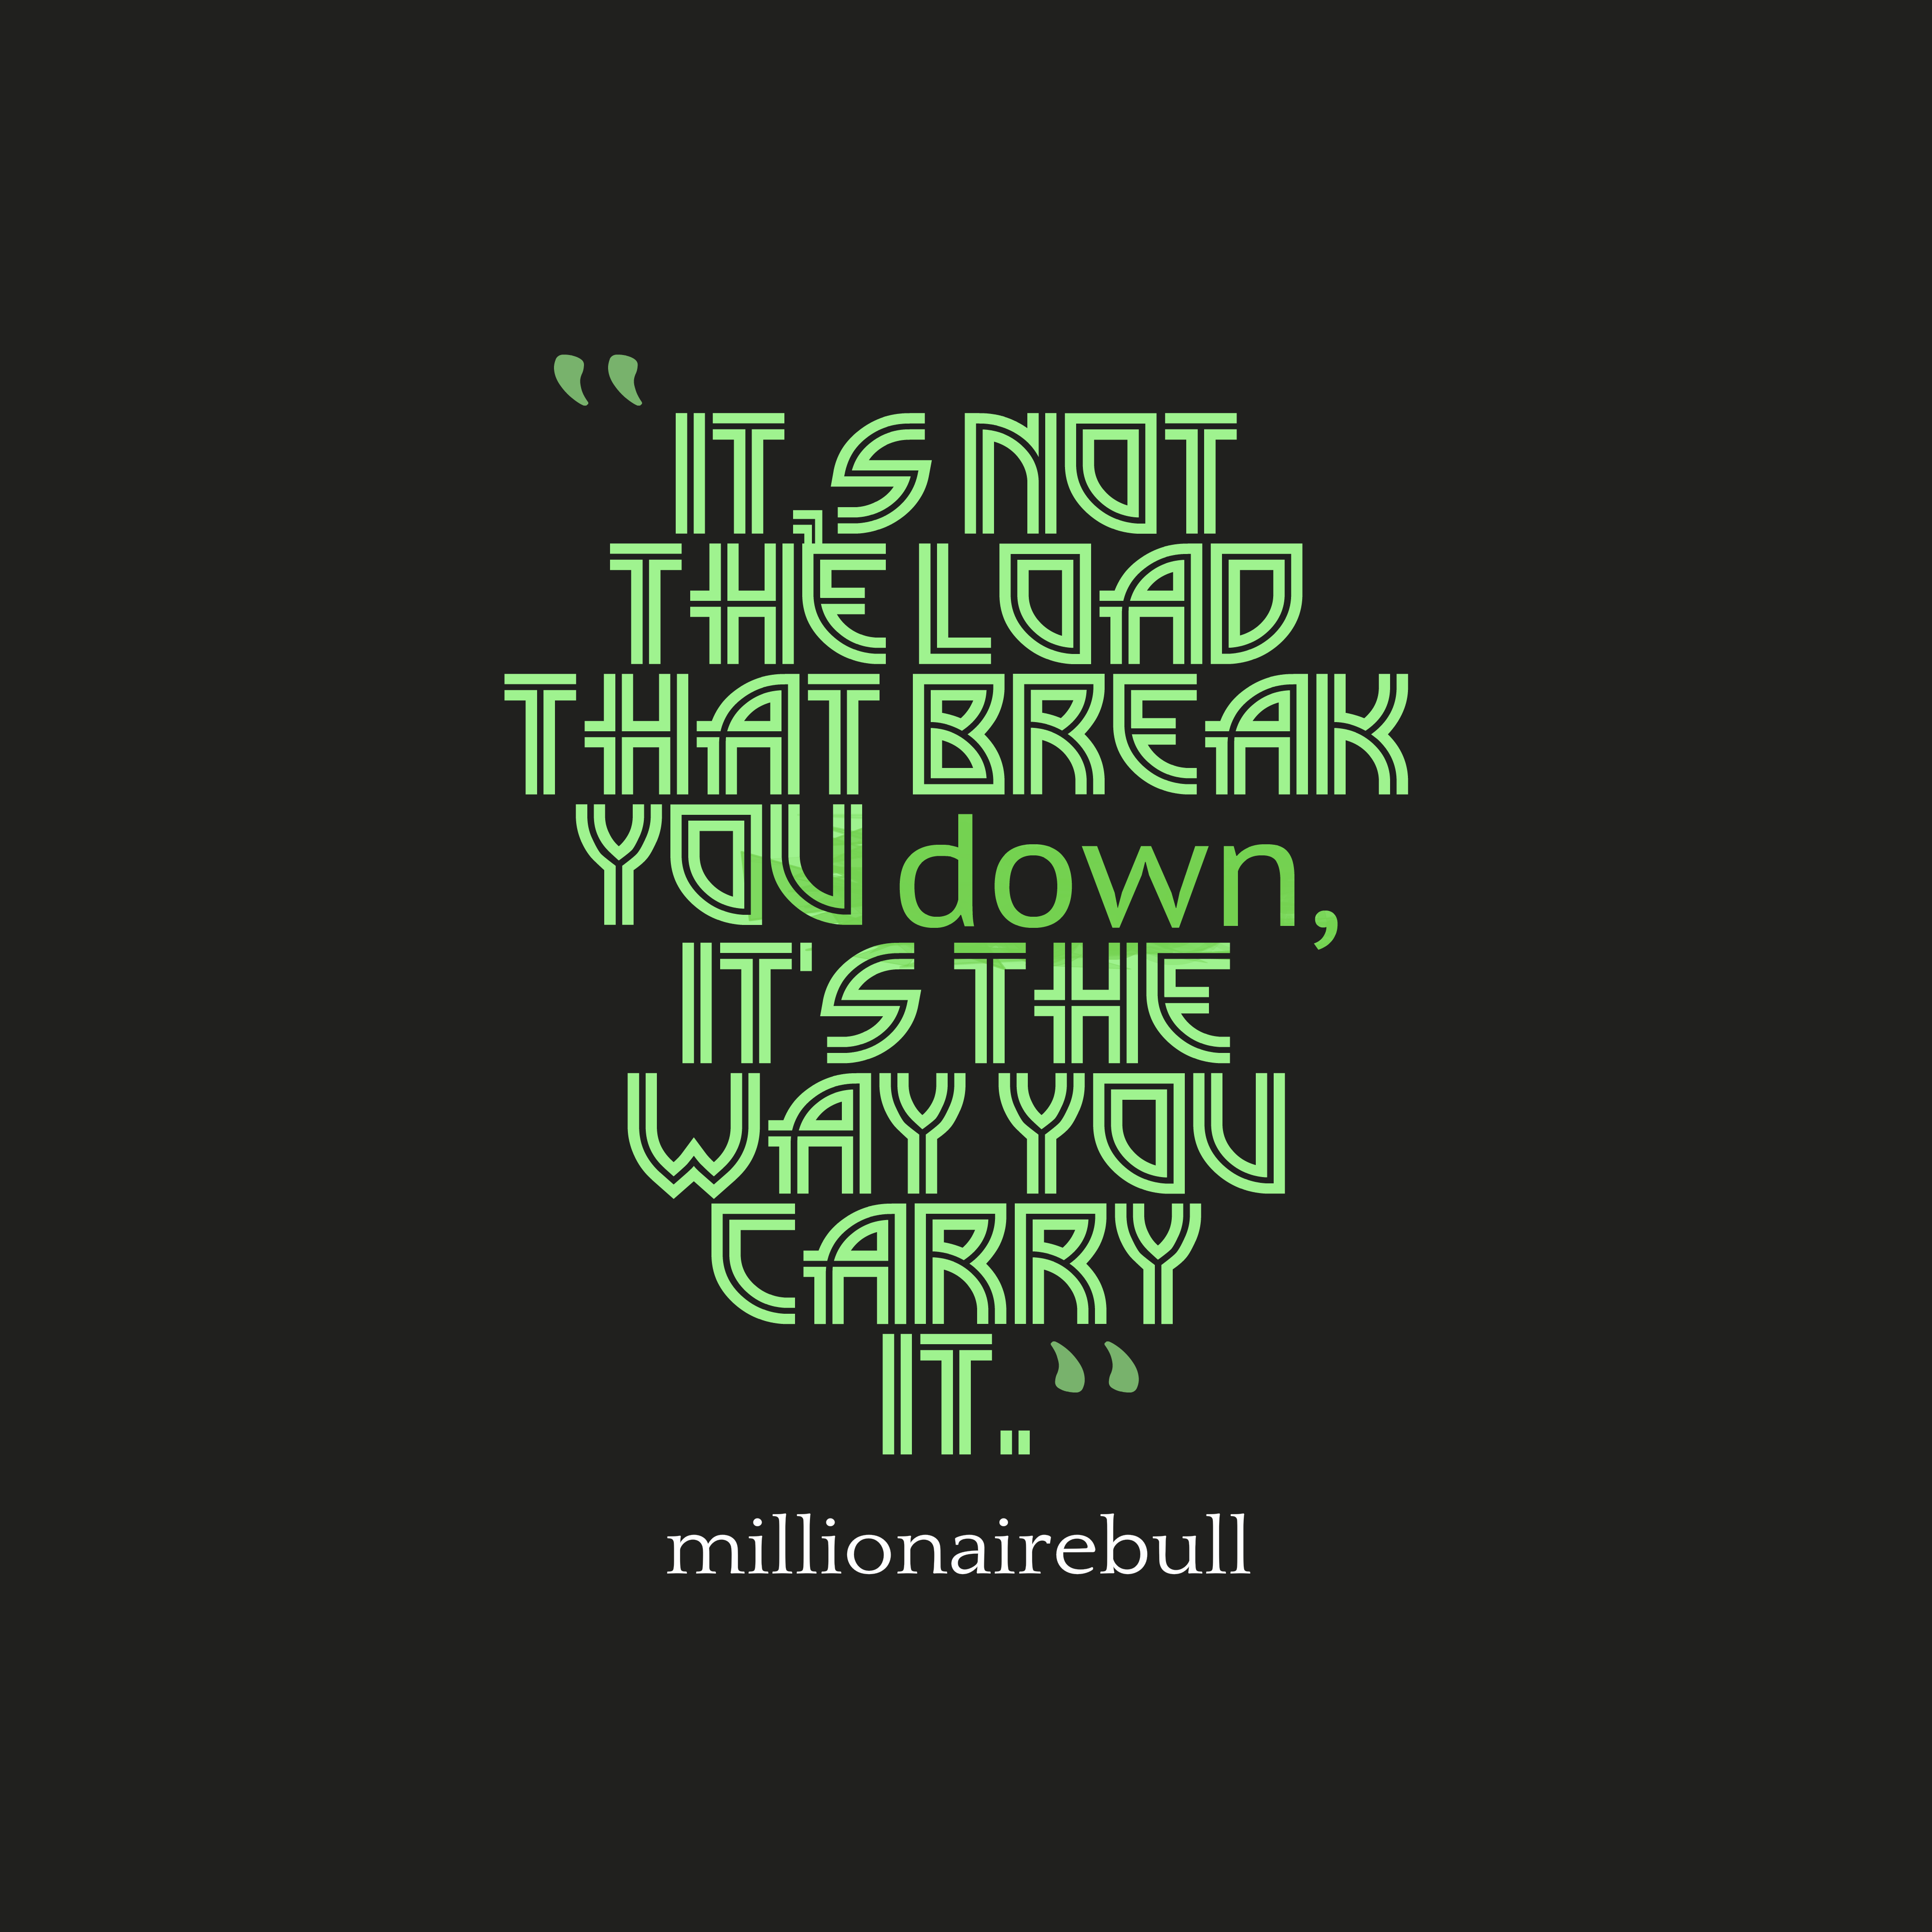 Quotes image of It,s not the load that break you down, it's the way you carry it.